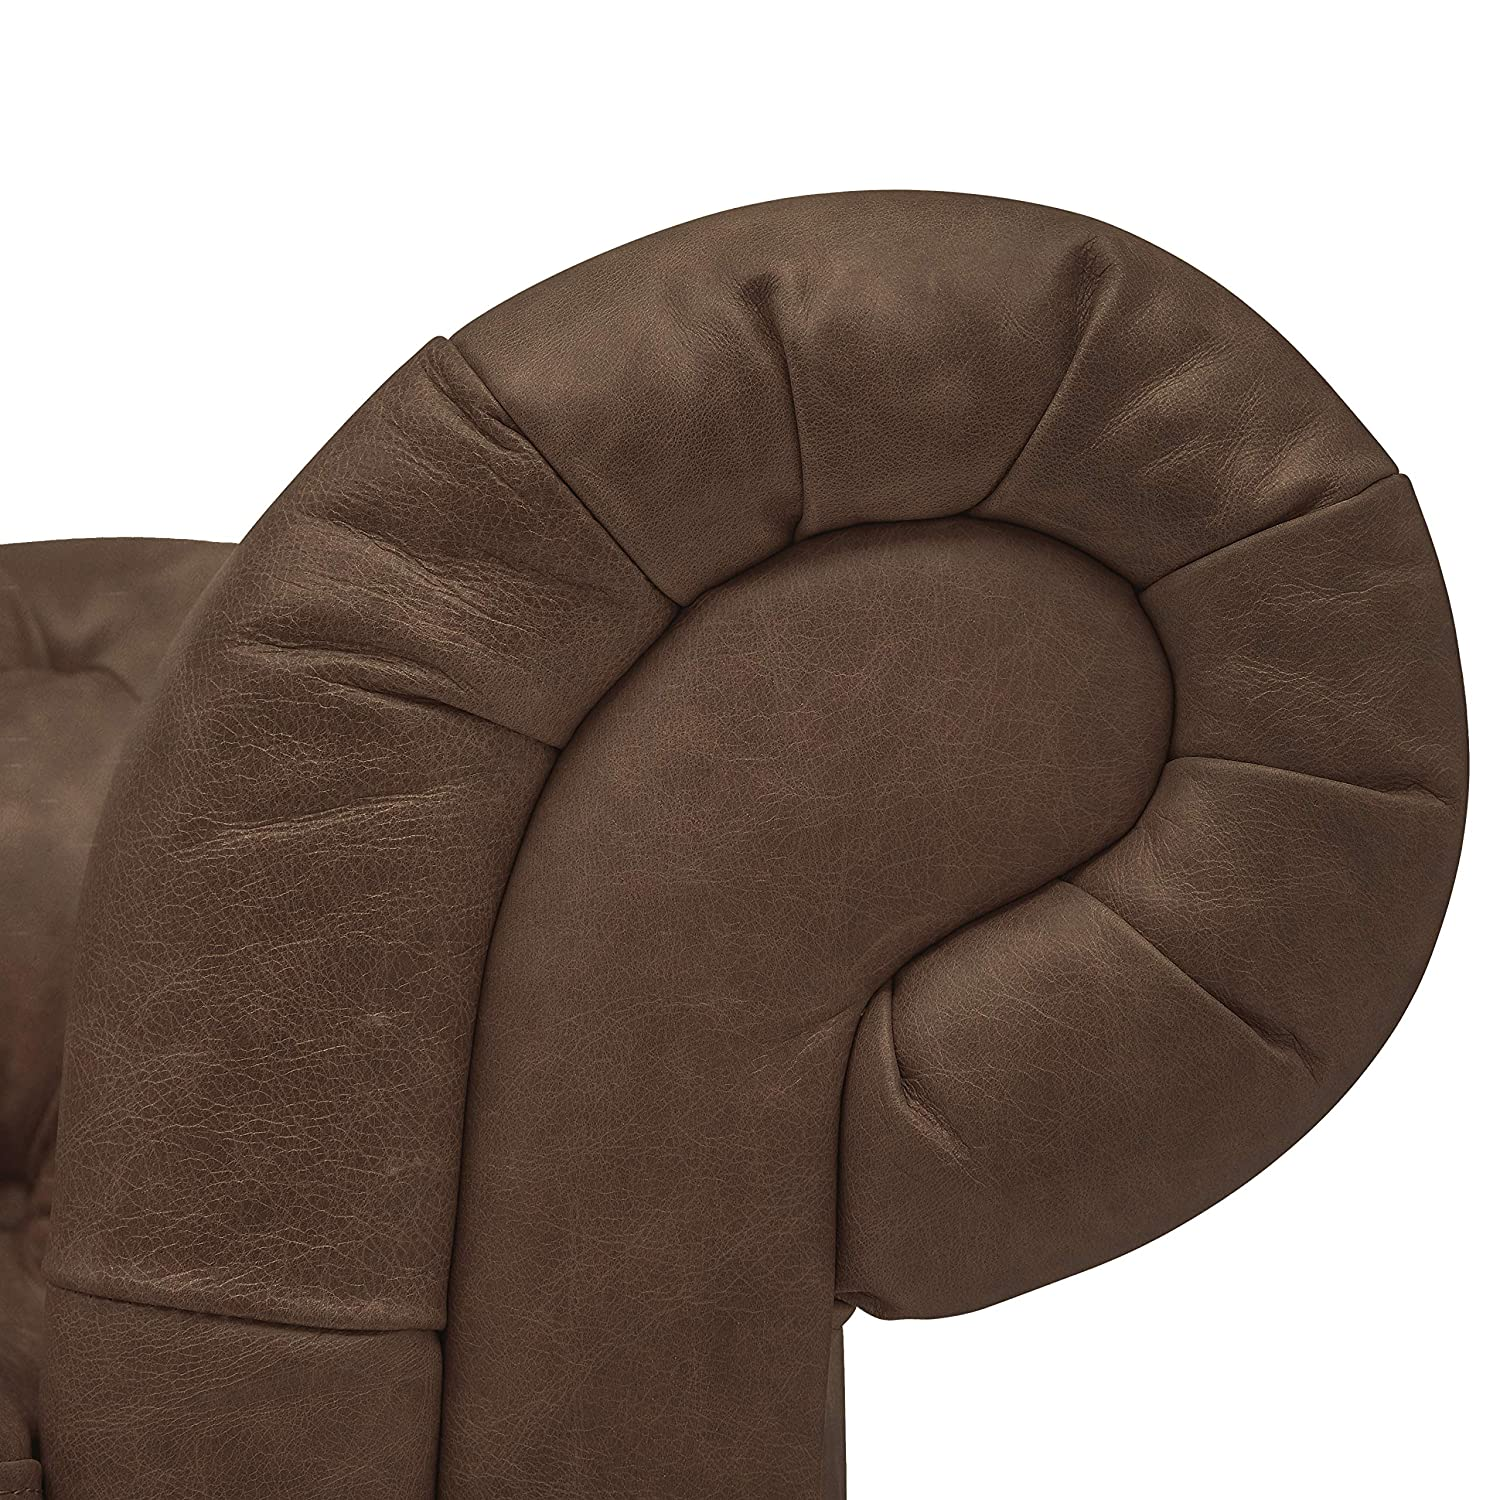 Stone Beam Bradbury Chesterfield Tufted Leather Loveseat Sofa Couch, 78.7 W, Brown